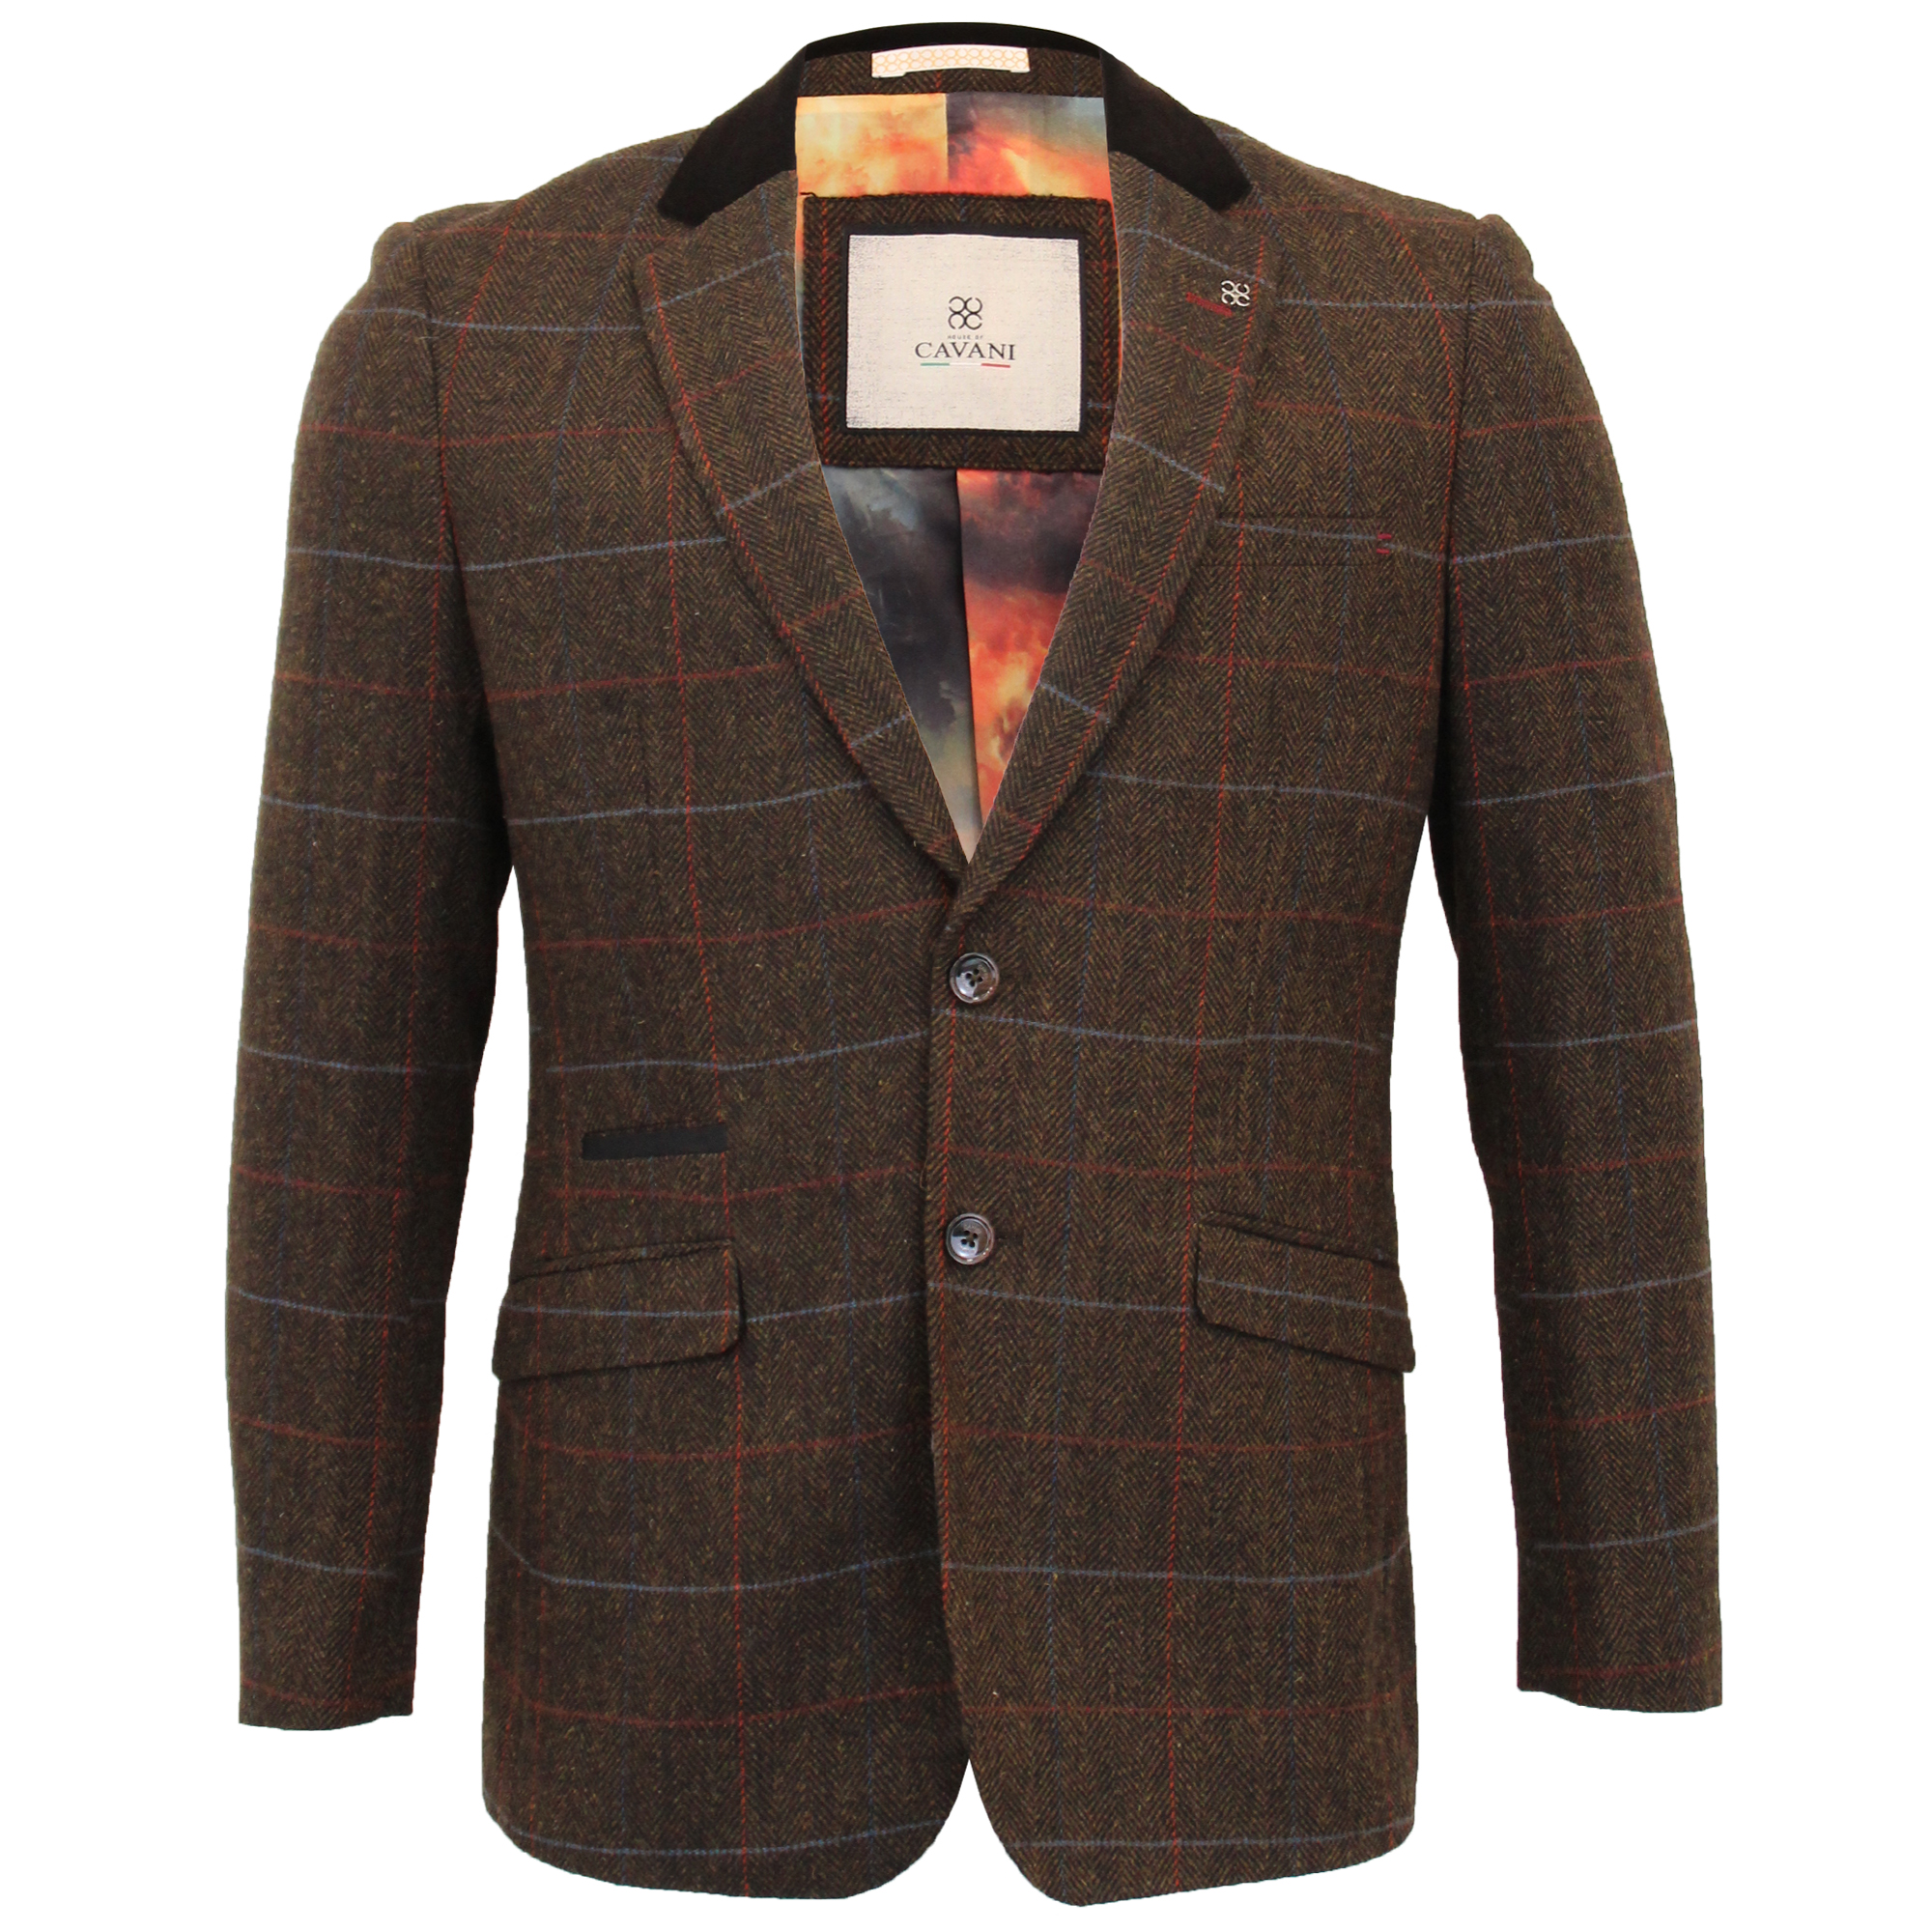 Mens-WOOL-MIX-Tweed-3-Piece-Suit-Cavani-Blazer-Waistcoat-Trouser-Peaky-Blinders thumbnail 2